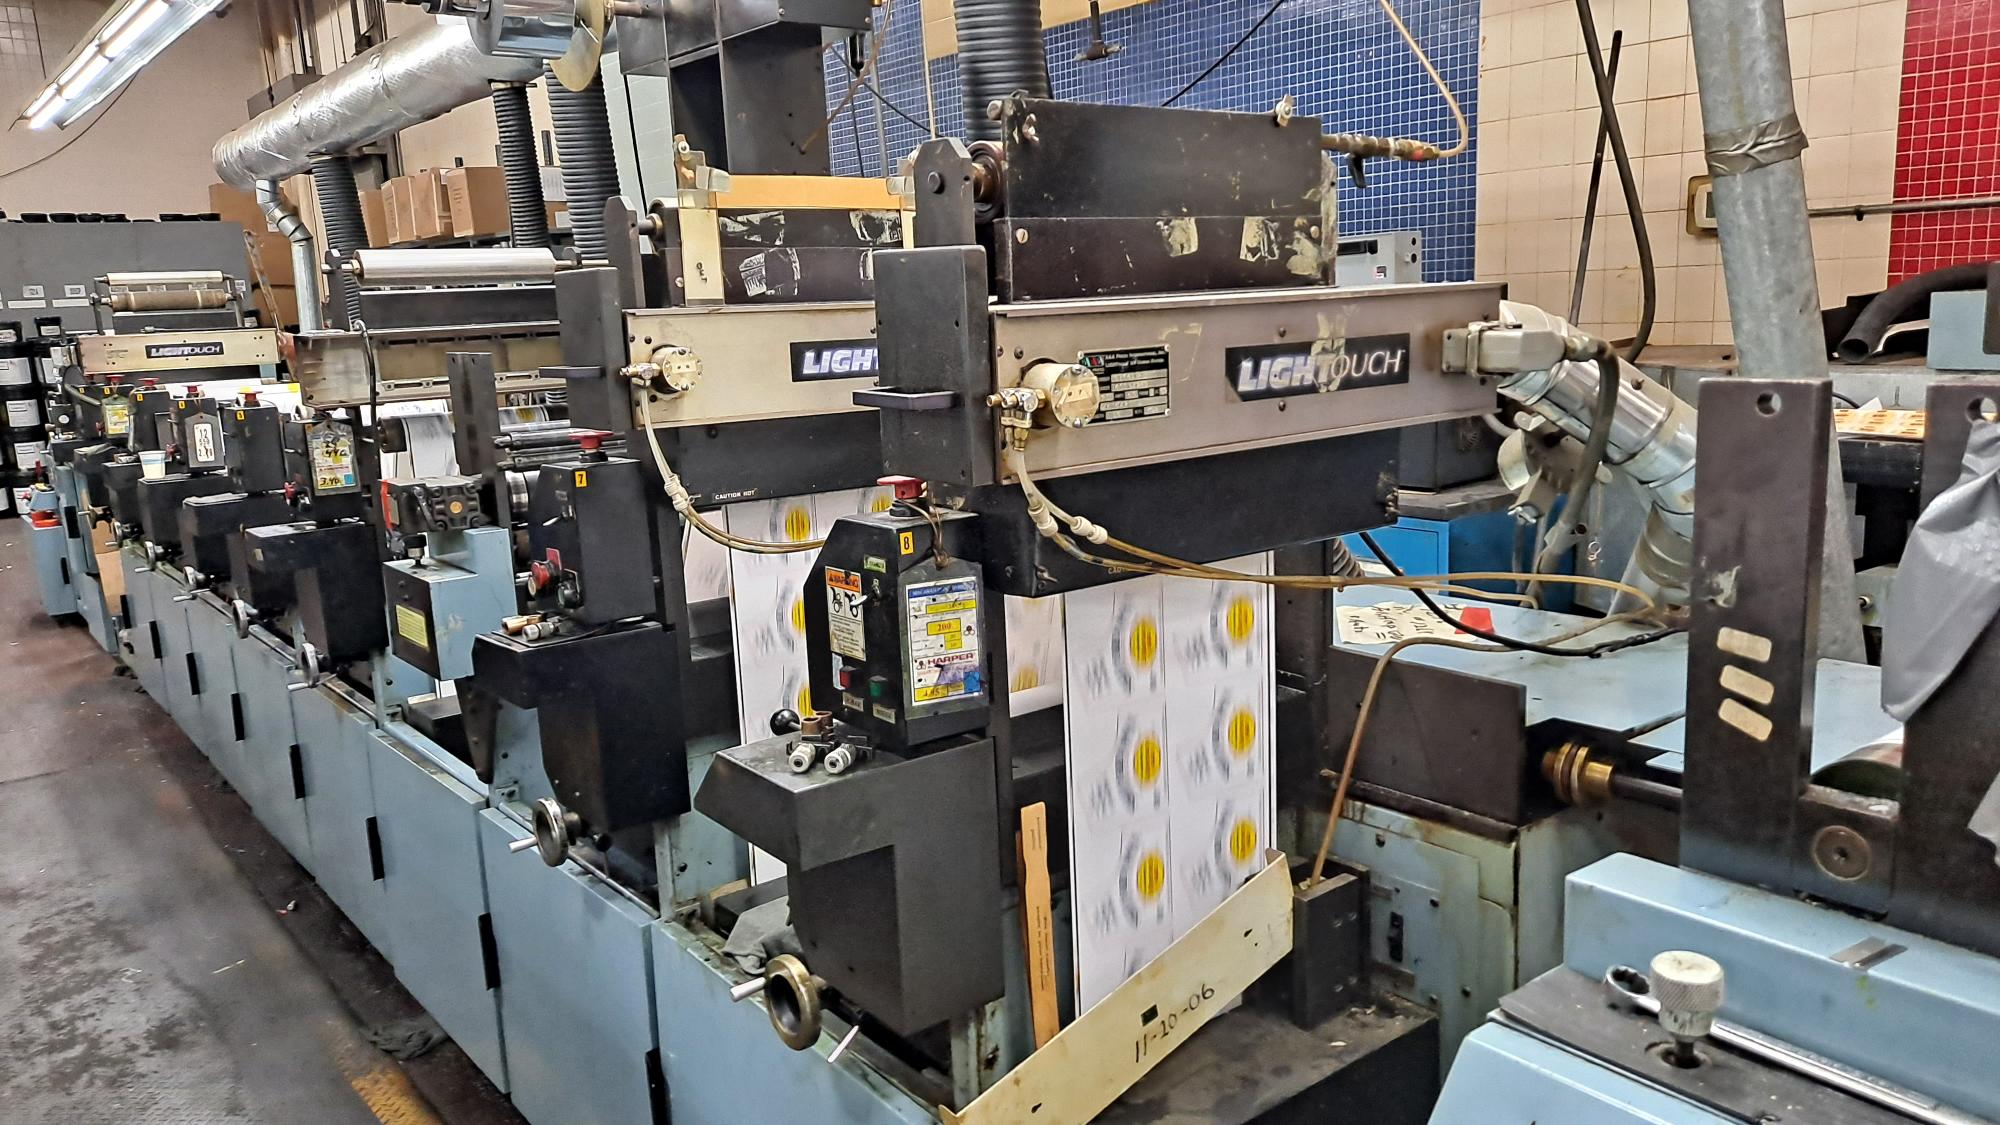 Propheteer 1300L - Used Flexo Printing Presses and Used Flexographic Equipment-0